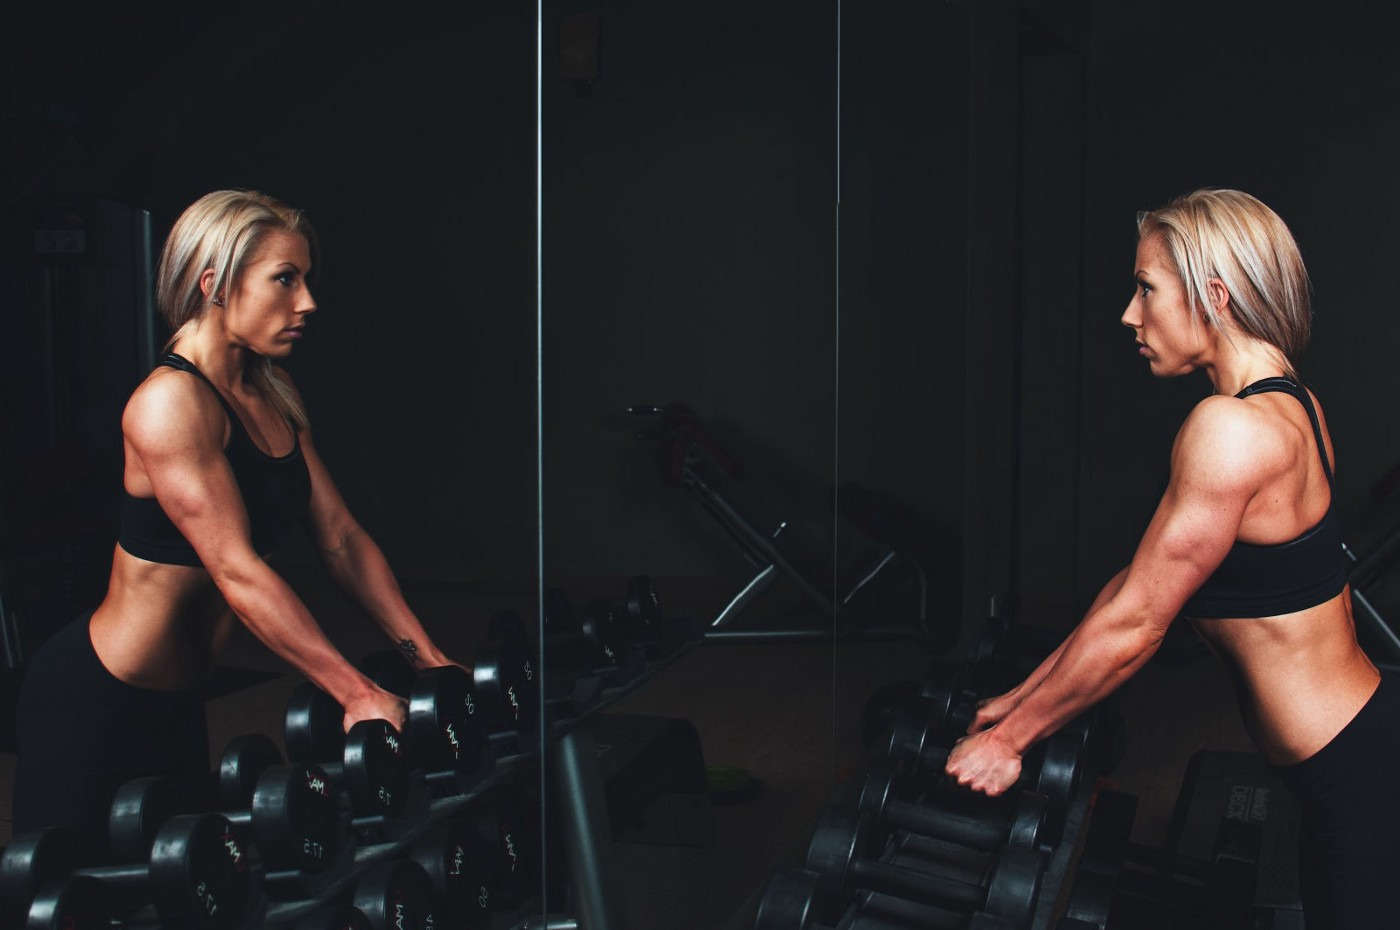 Fit blond woman holding weights and looking at herself in a gym mirror